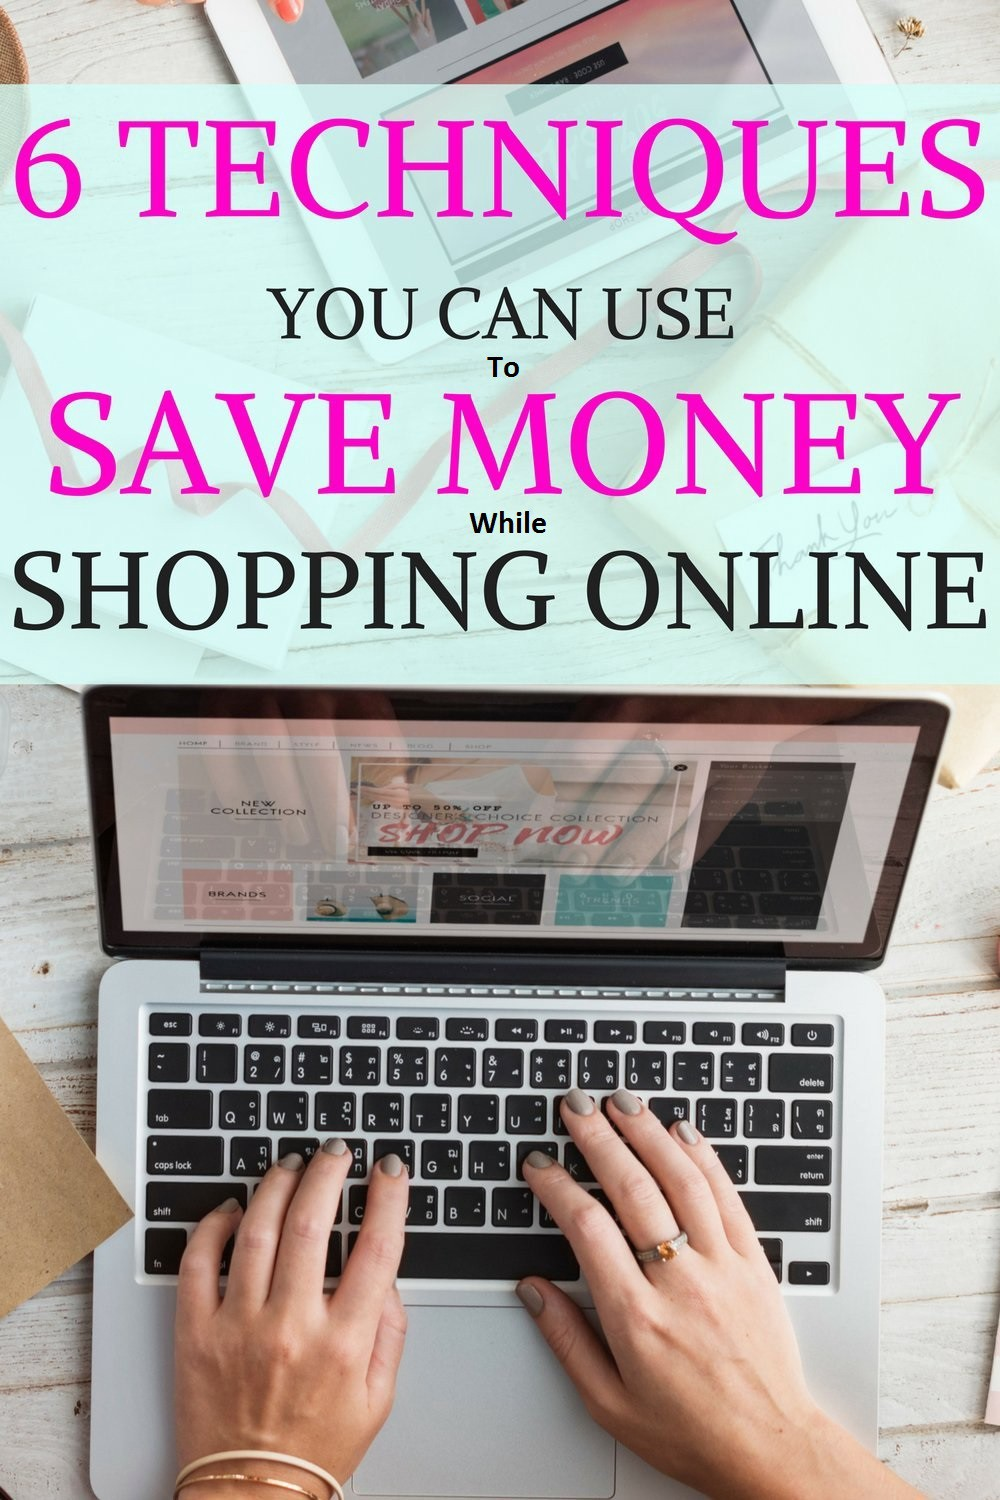 Six techniques you can use to save money while shopping online: